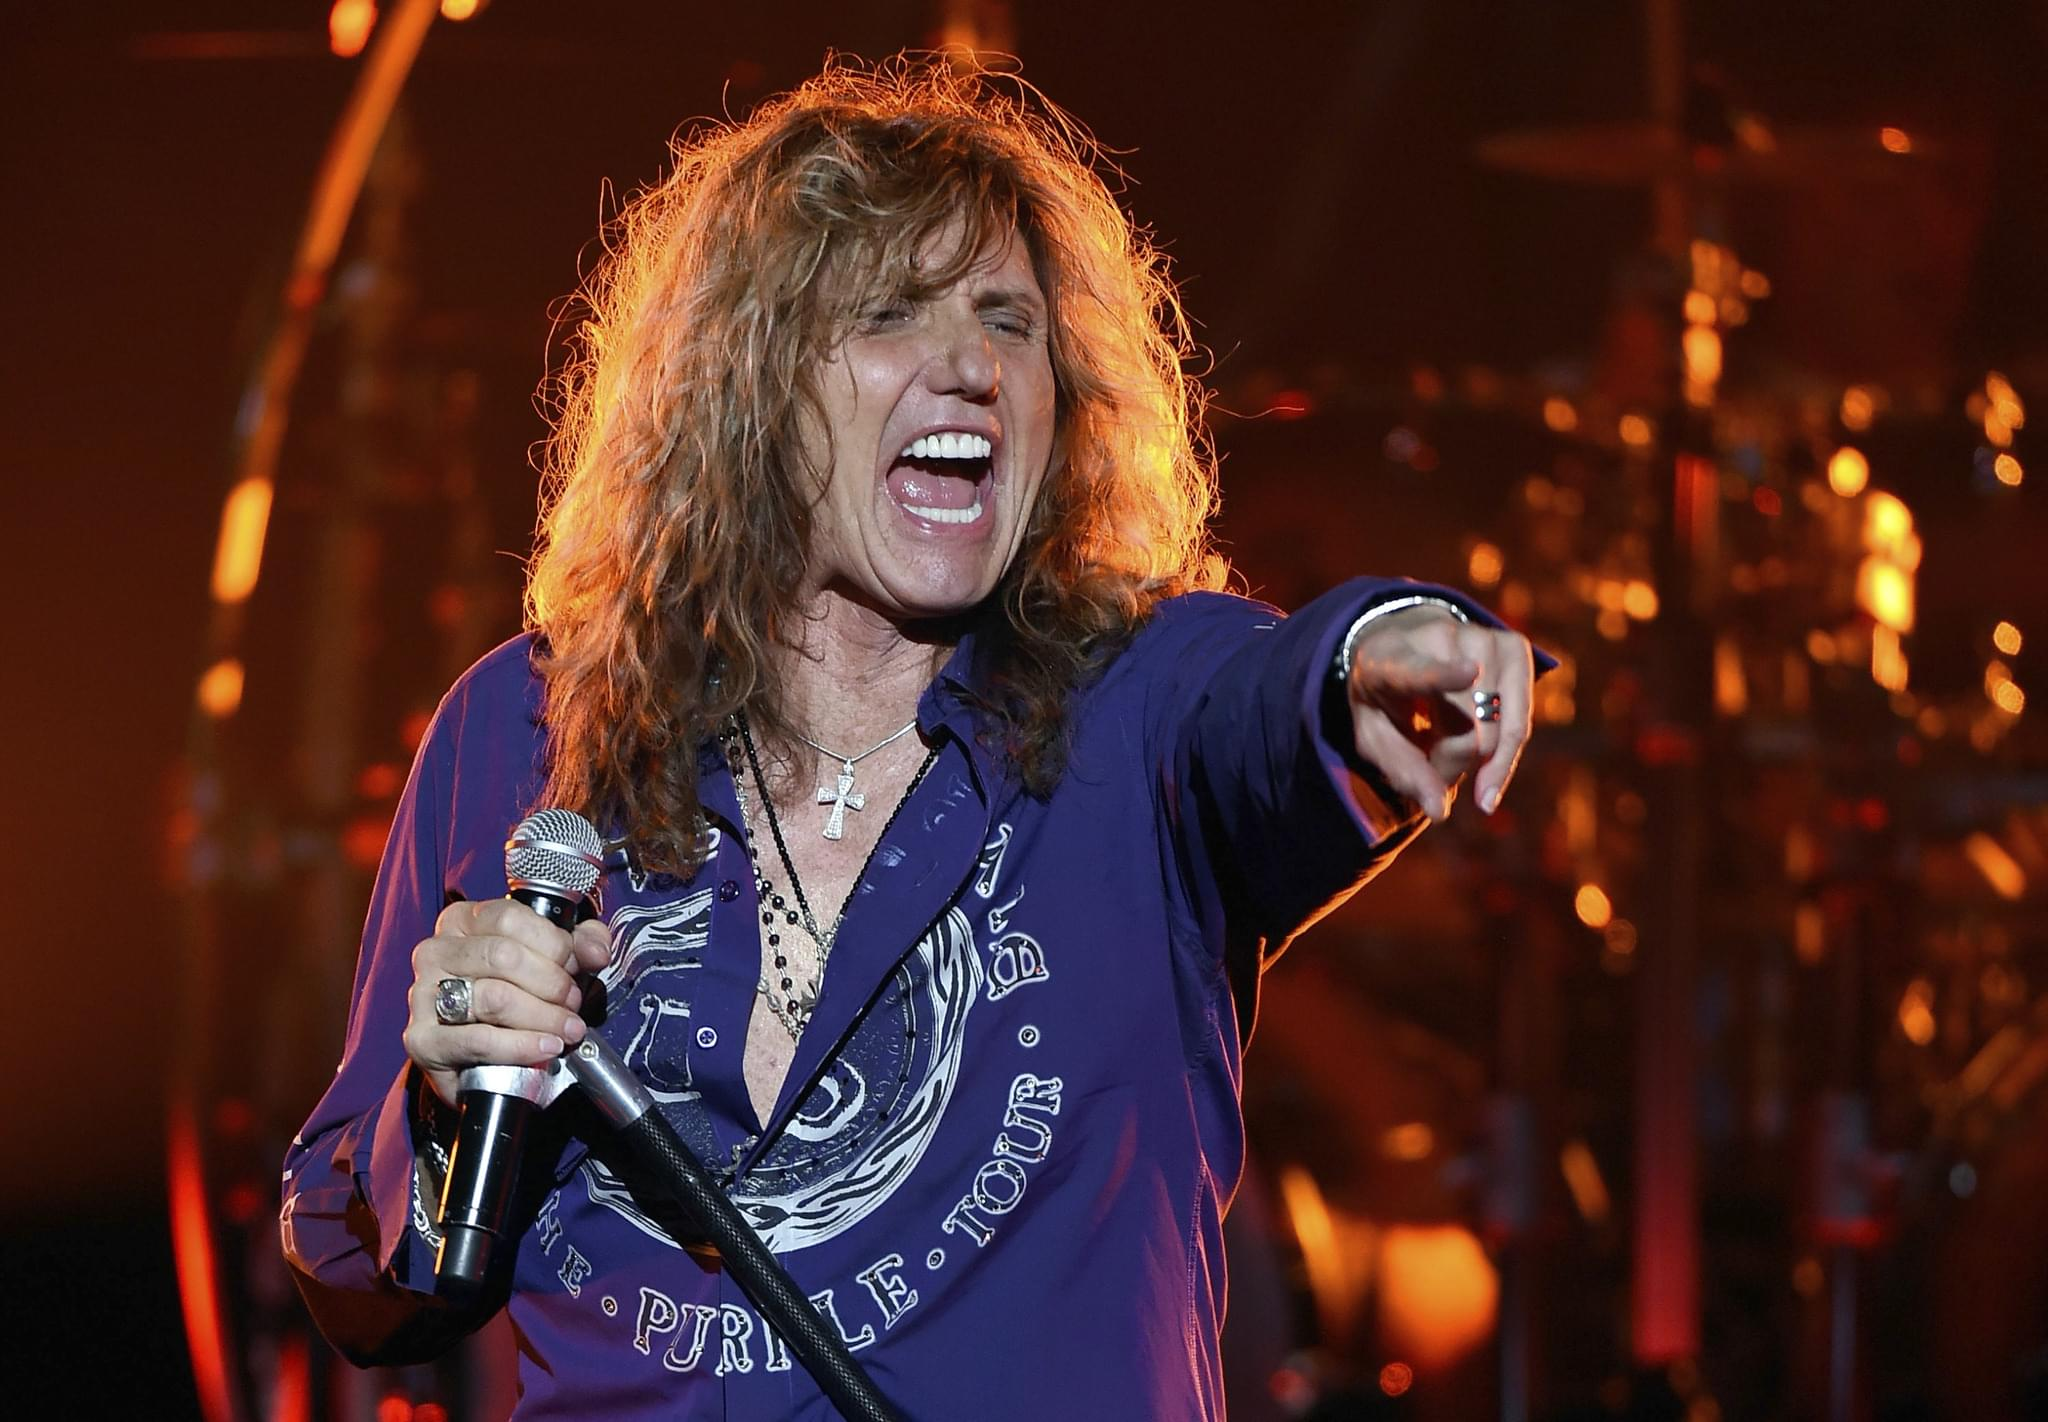 INTERVIEW: DAVID COVERDALE – WHITESNAKE